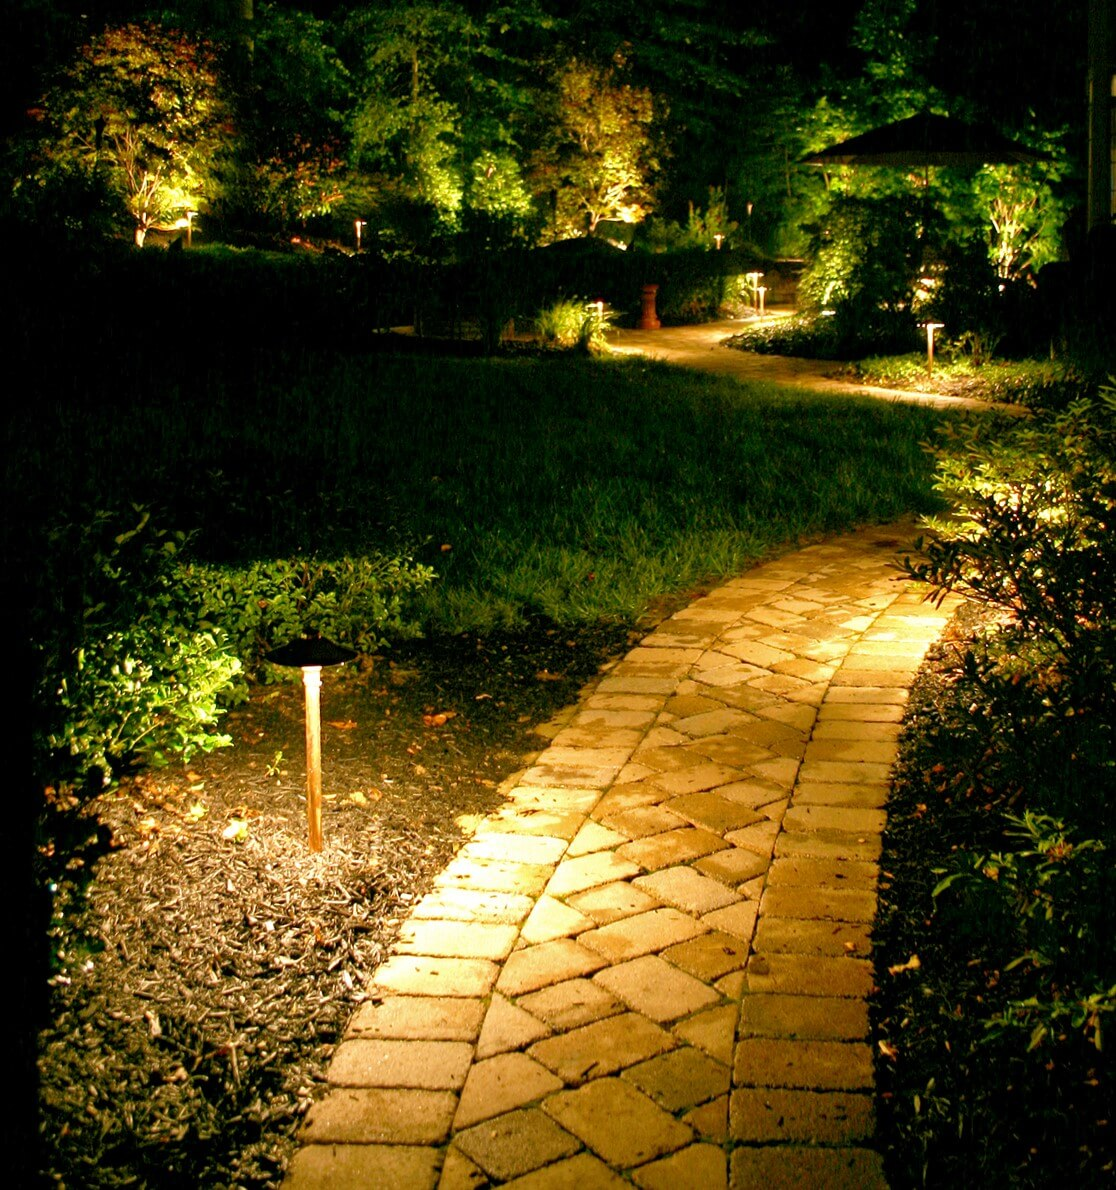 Bright Lights along the Path